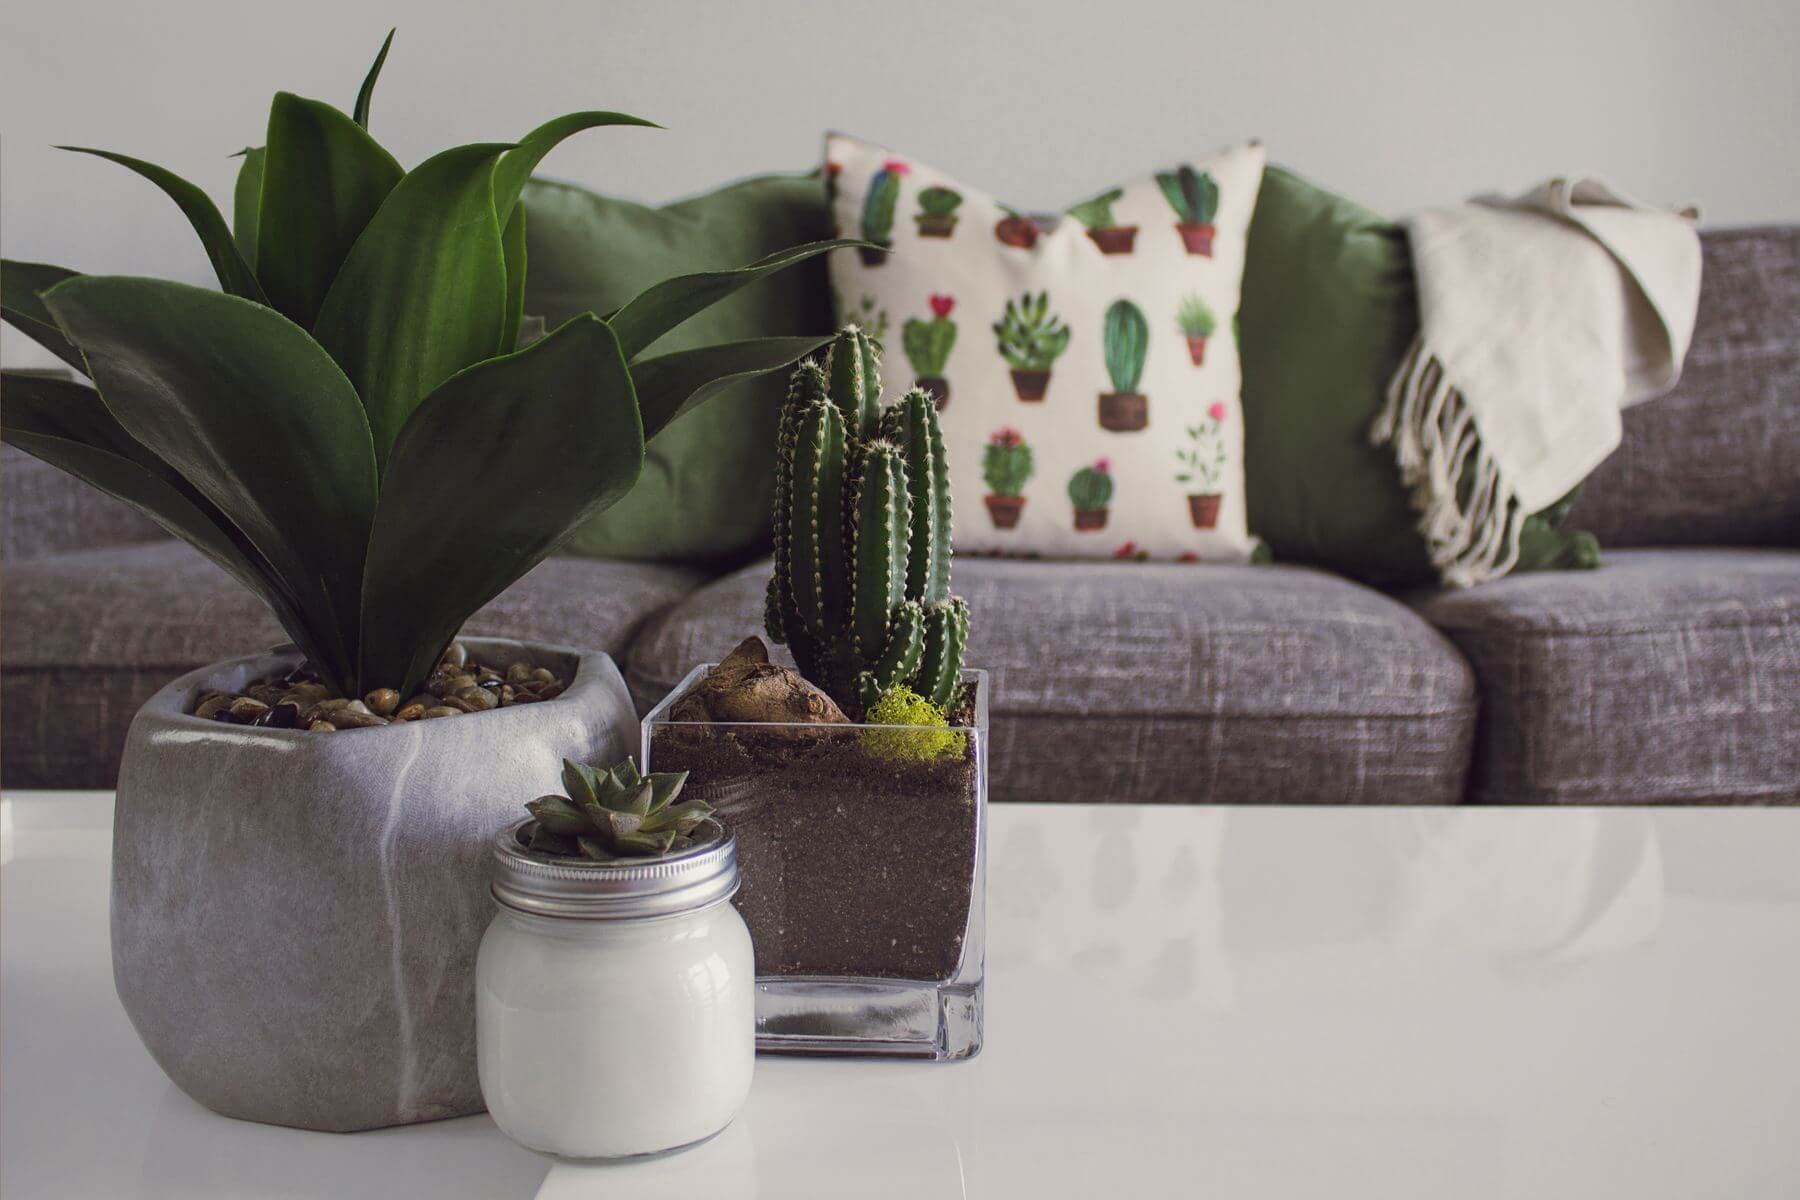 Why You Should Get Indoor Plants For Your Home and Workplace